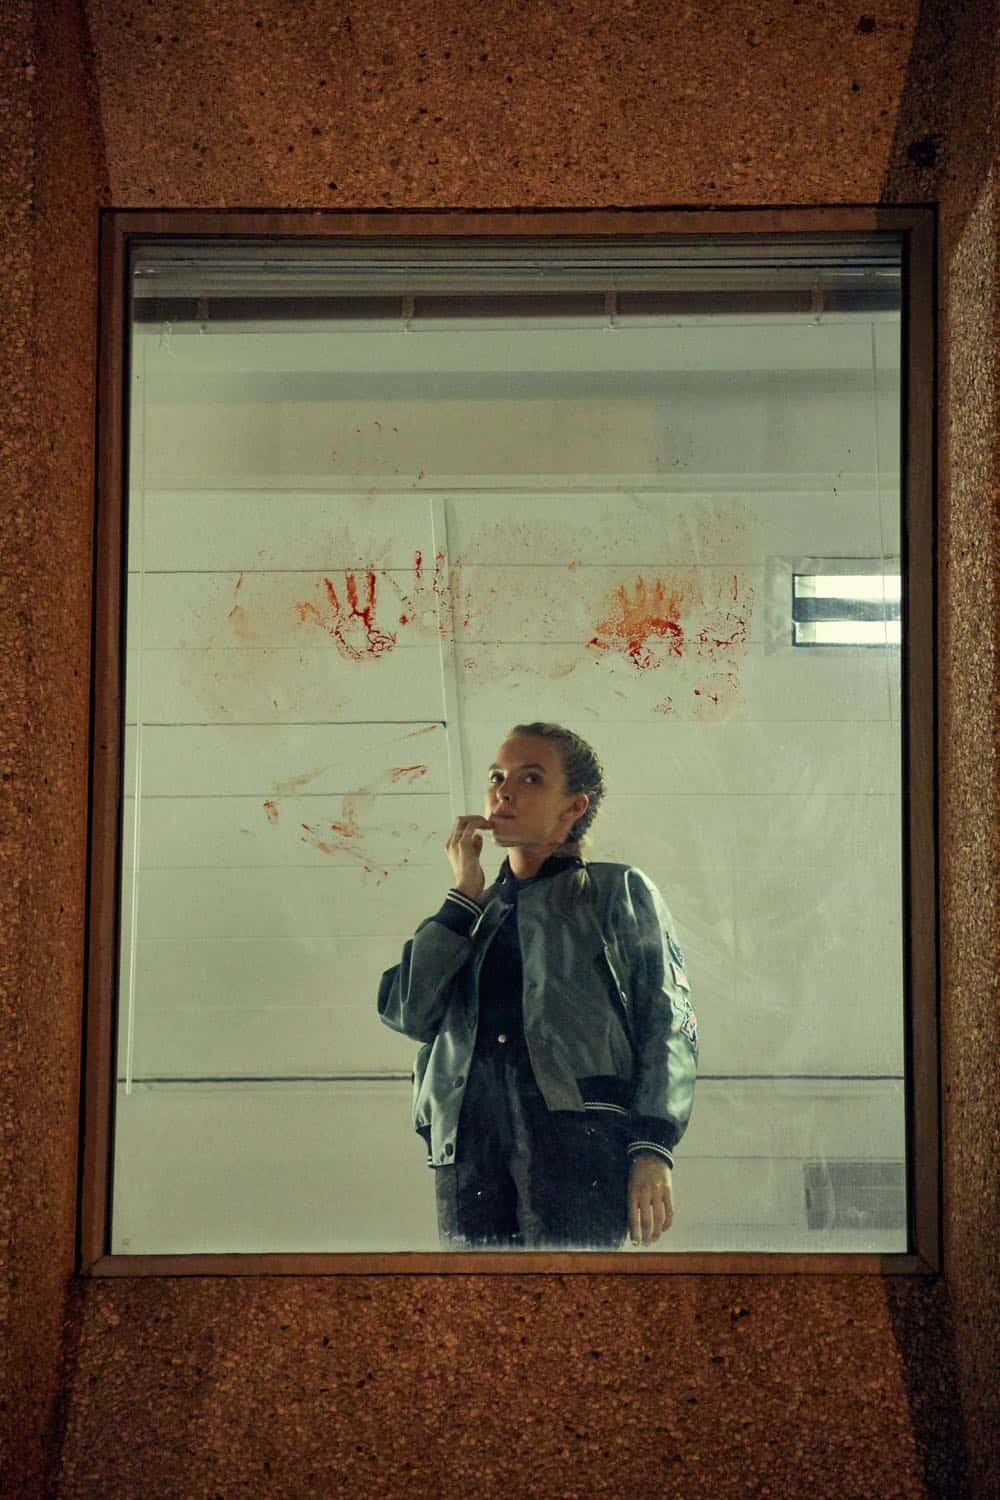 Killing Eve Episode 2 Season 1 Ill Deal With Him Later 08